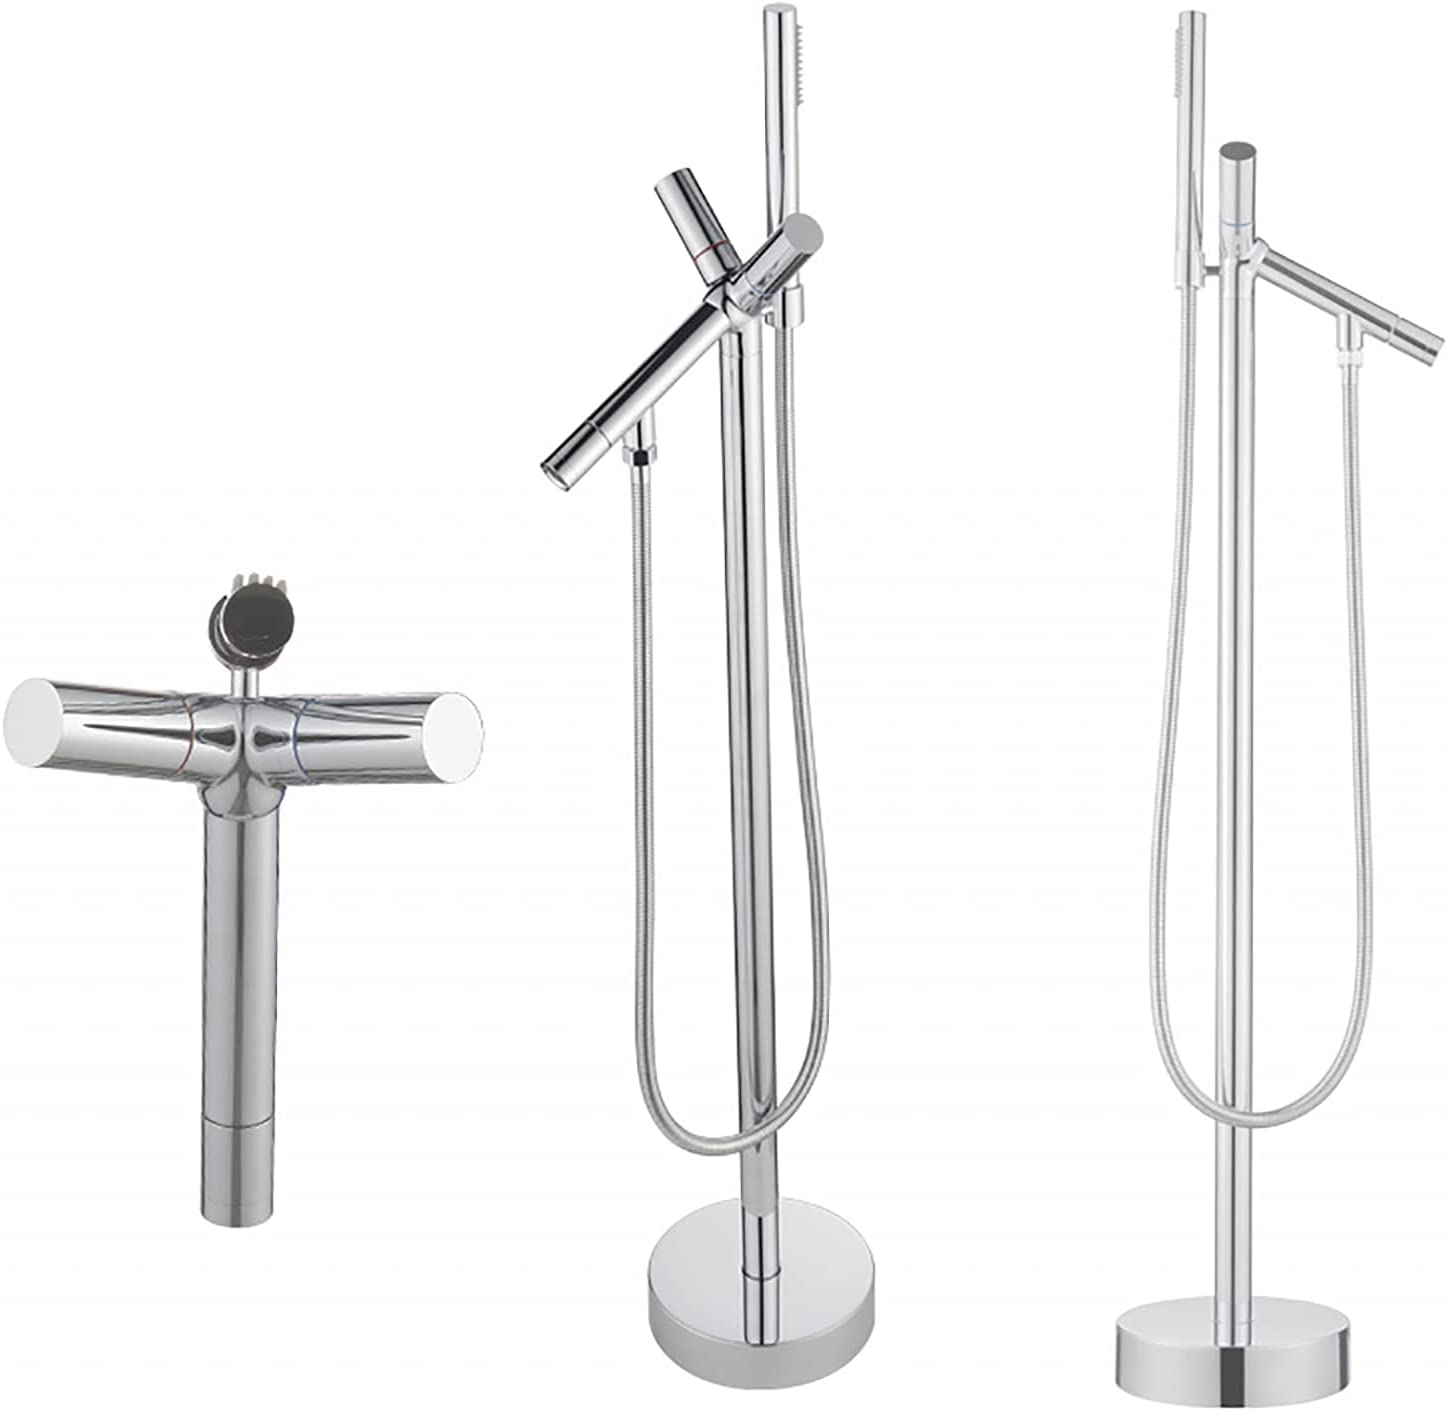 ZGZFEIYU Thermostatic Shower Faucet Show Tub Very Fort Worth Mall popular Floor-Standing Side